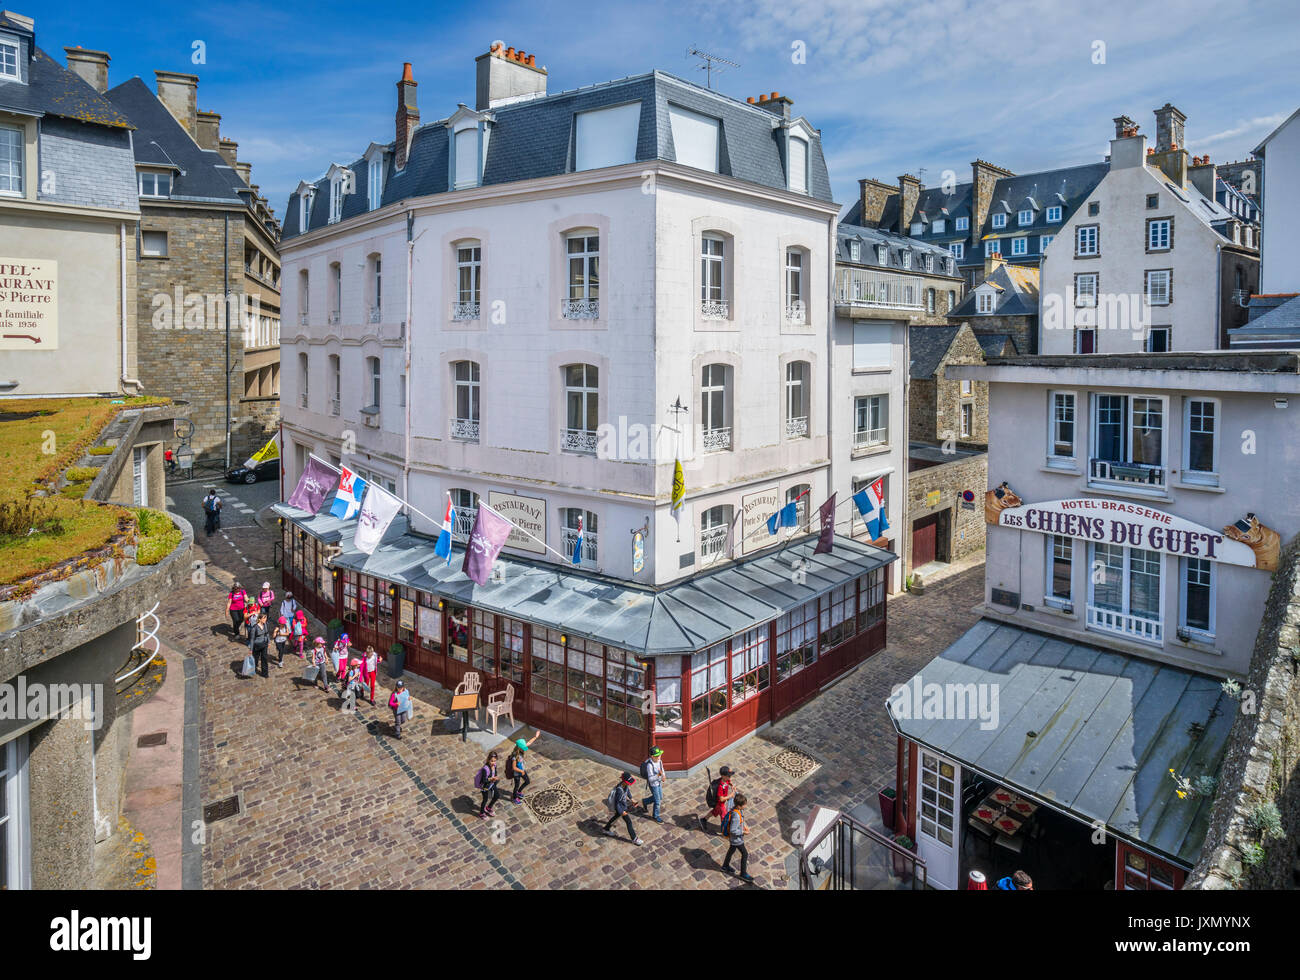 France, Brittany, Saint-Malo, Place Guet, Intra-Muros view from the city Wall at Bastion de la Hollande - Stock Image